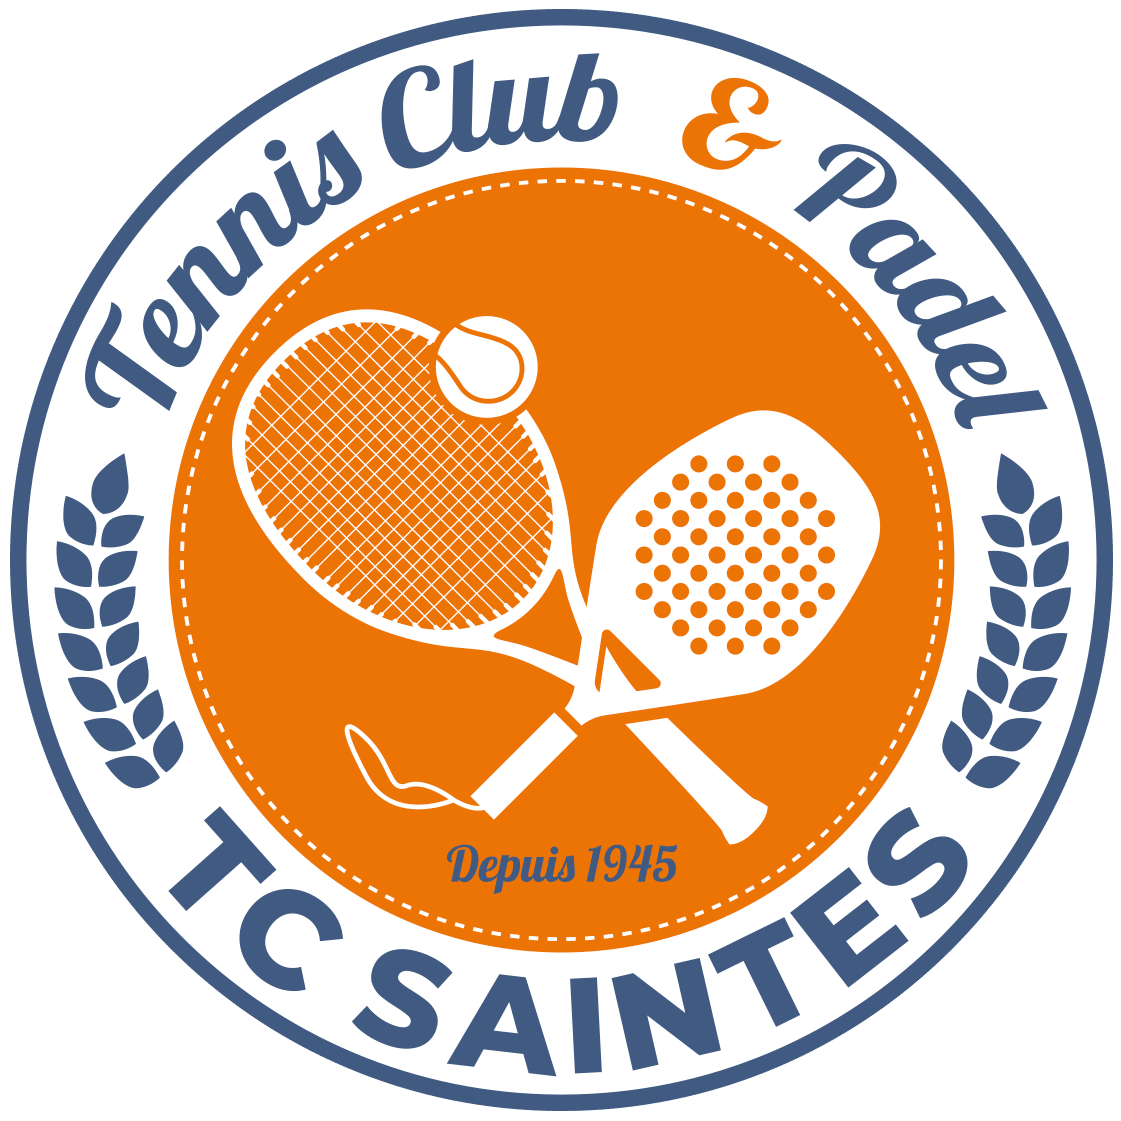 Tennis Padel Club de Saintes